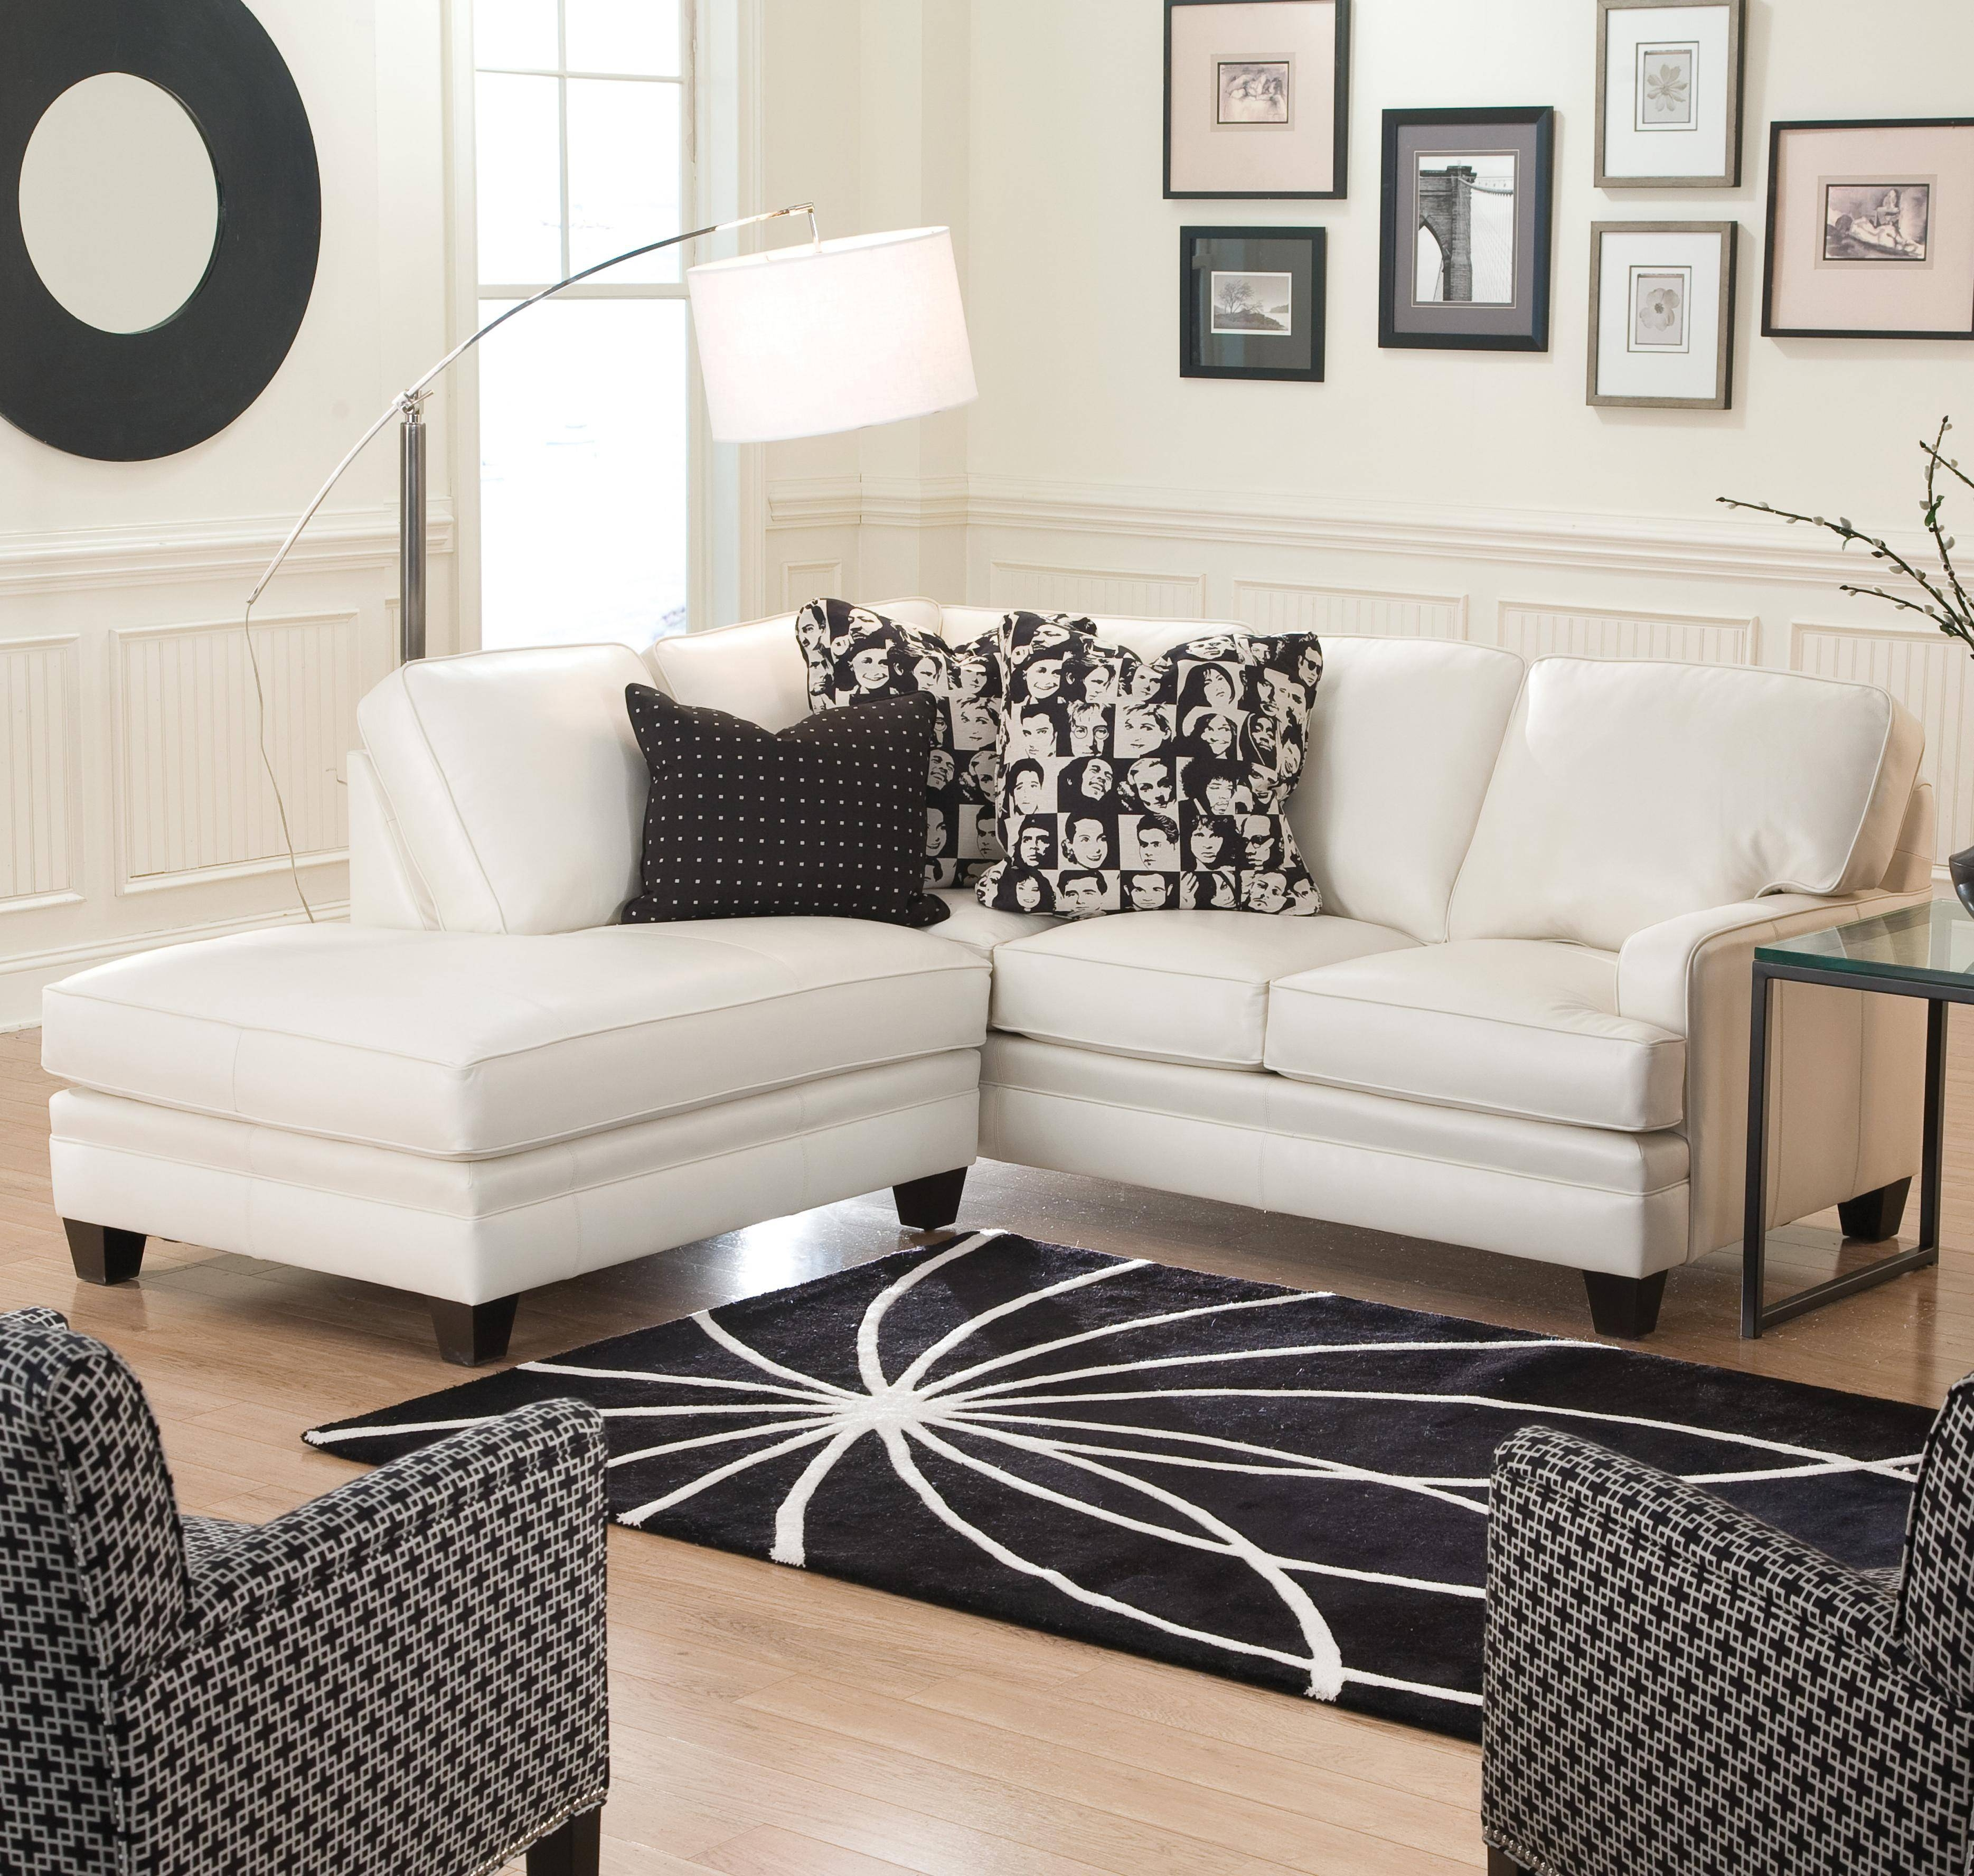 Small Sectional Sofa Rooms To Go | Living Room Sets You'll Love with Sectional Sofas in Small Spaces (Image 19 of 25)